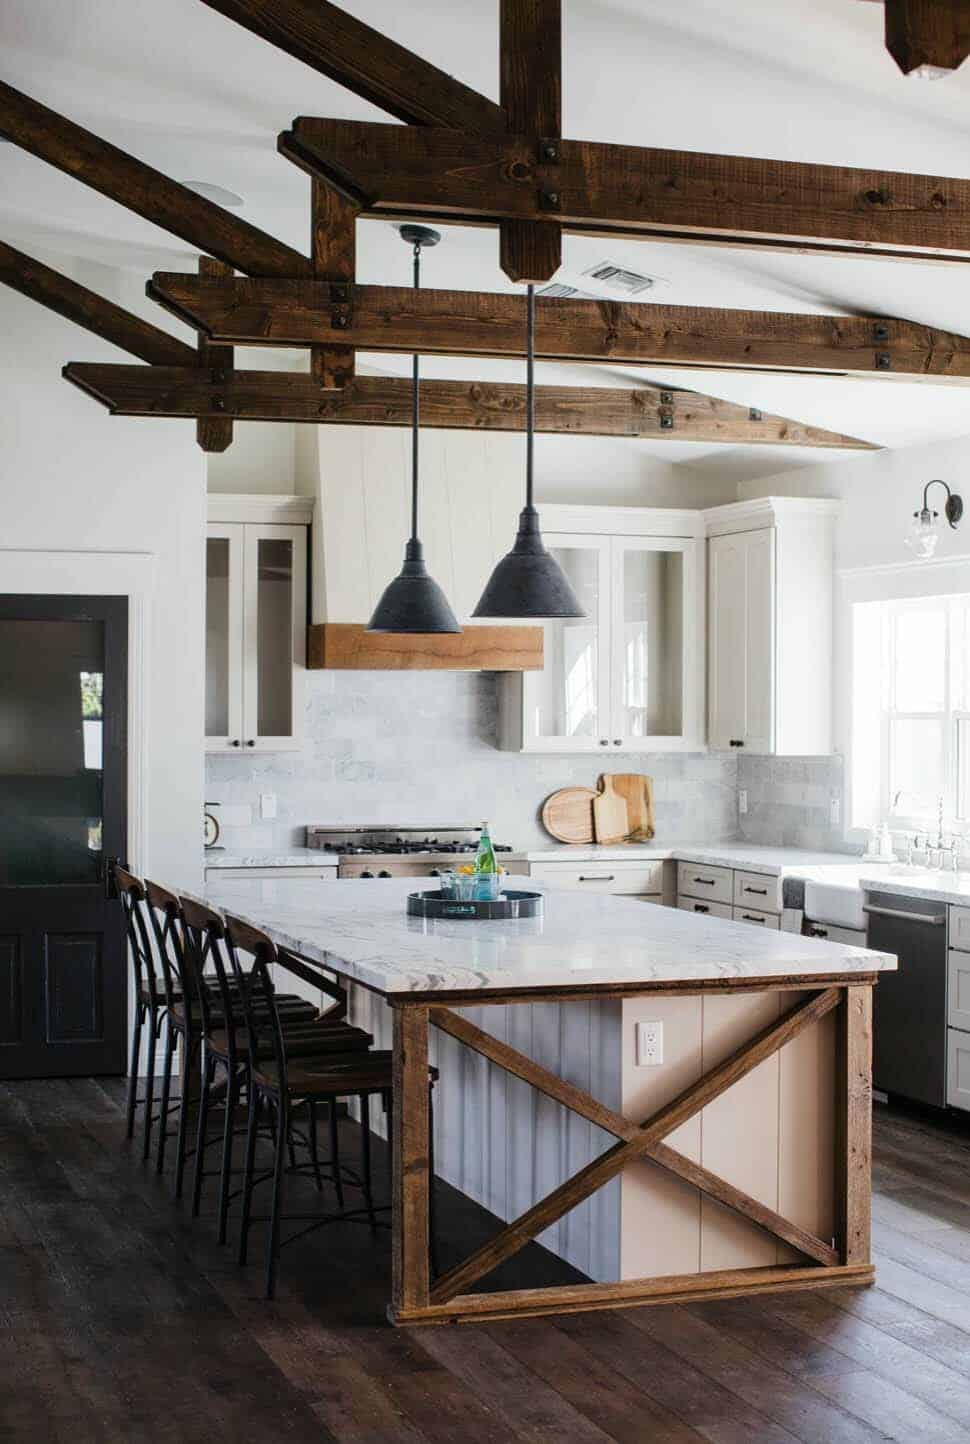 modern farmhouse kitchen with white accents, x-base island and wood beams